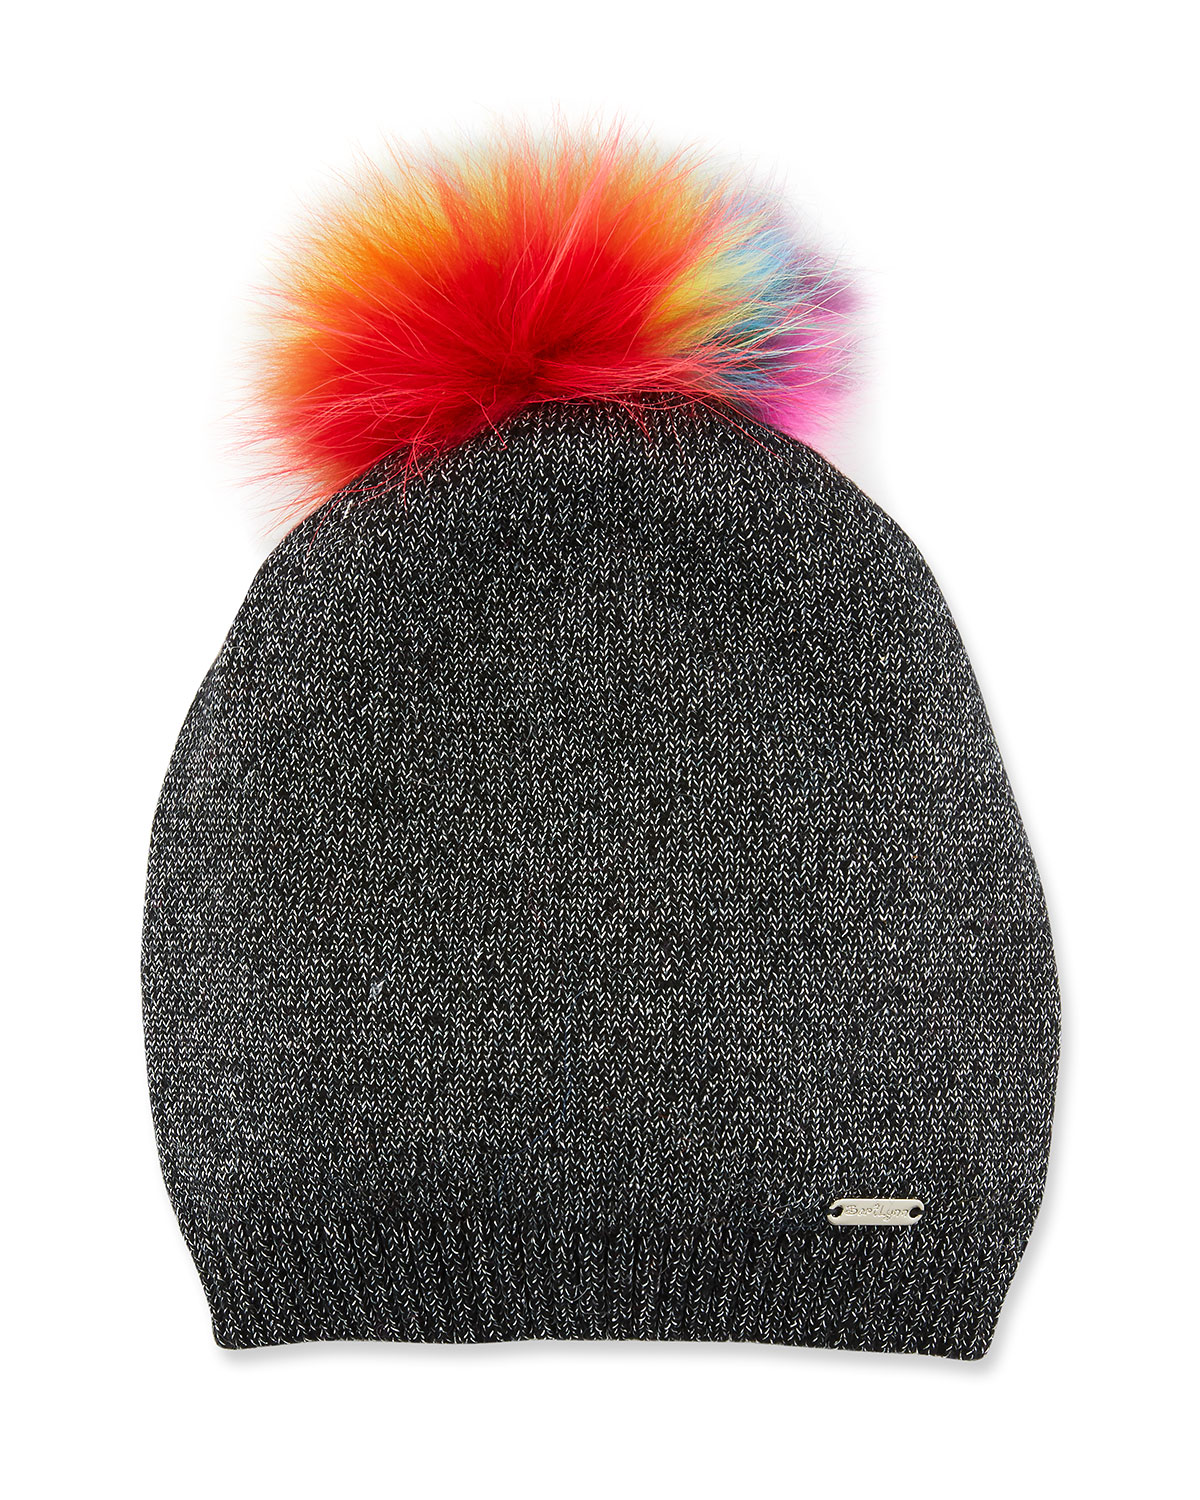 Girls' Sparkle Slouch Beanie Hat w/ Fur Pompom